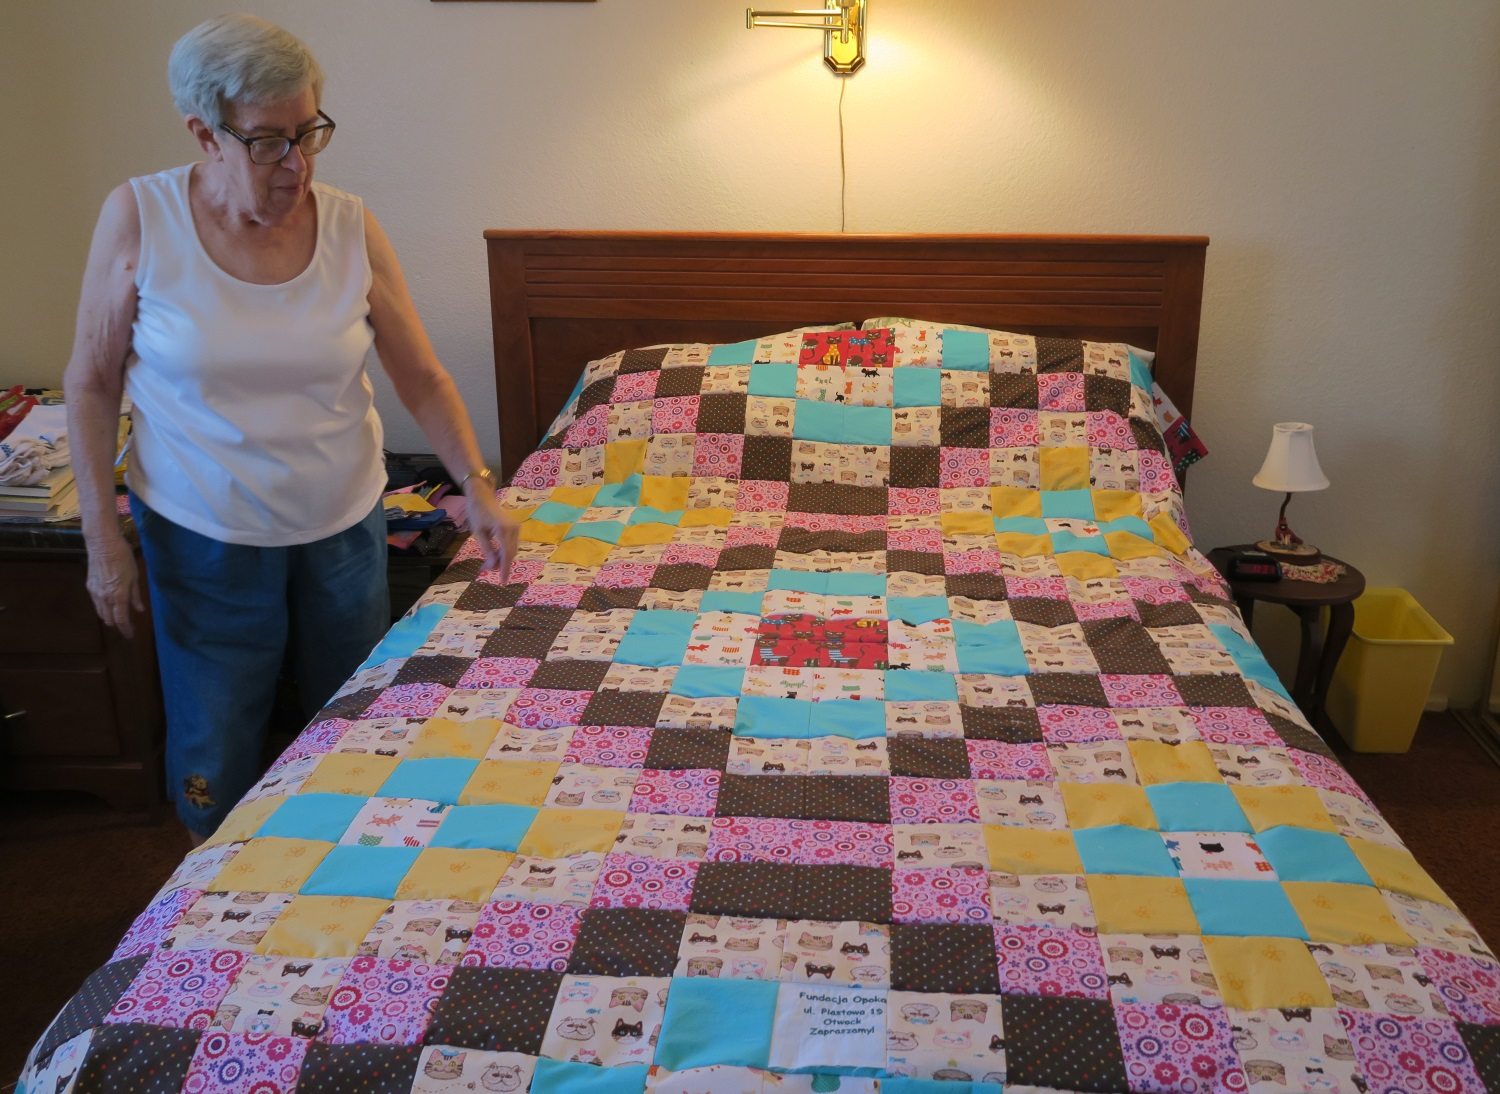 The big quilt top is made up of four smaller Around the World designs put together into one large top. It is draped over her guest bed to show me. She packs them in a box as she finishes them and then when the box is full, she ships it to me!